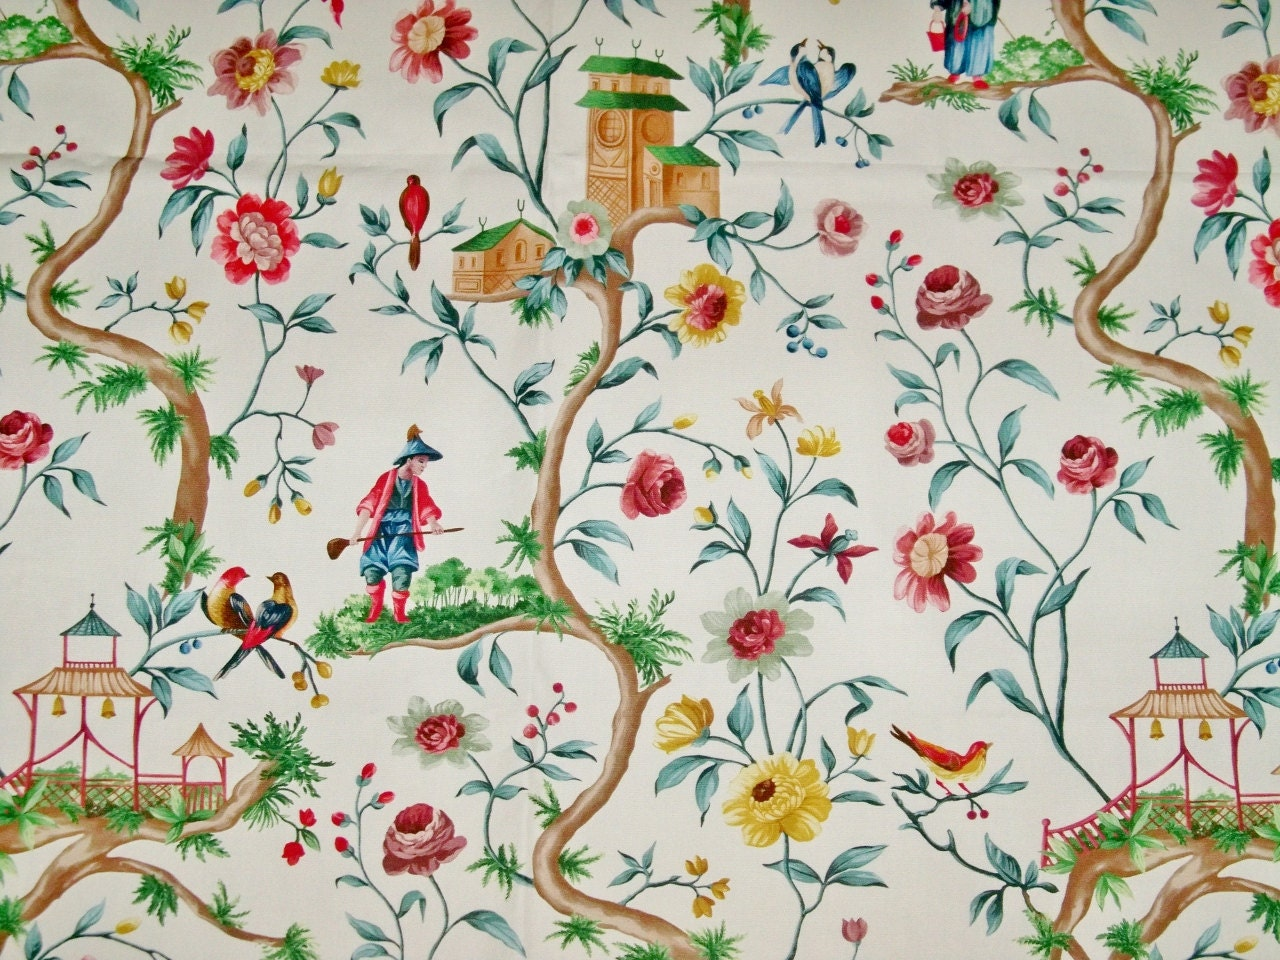 Pierre frey chinoiserie petite chinon toile cotton fabric 10 for Pierre frey fabric